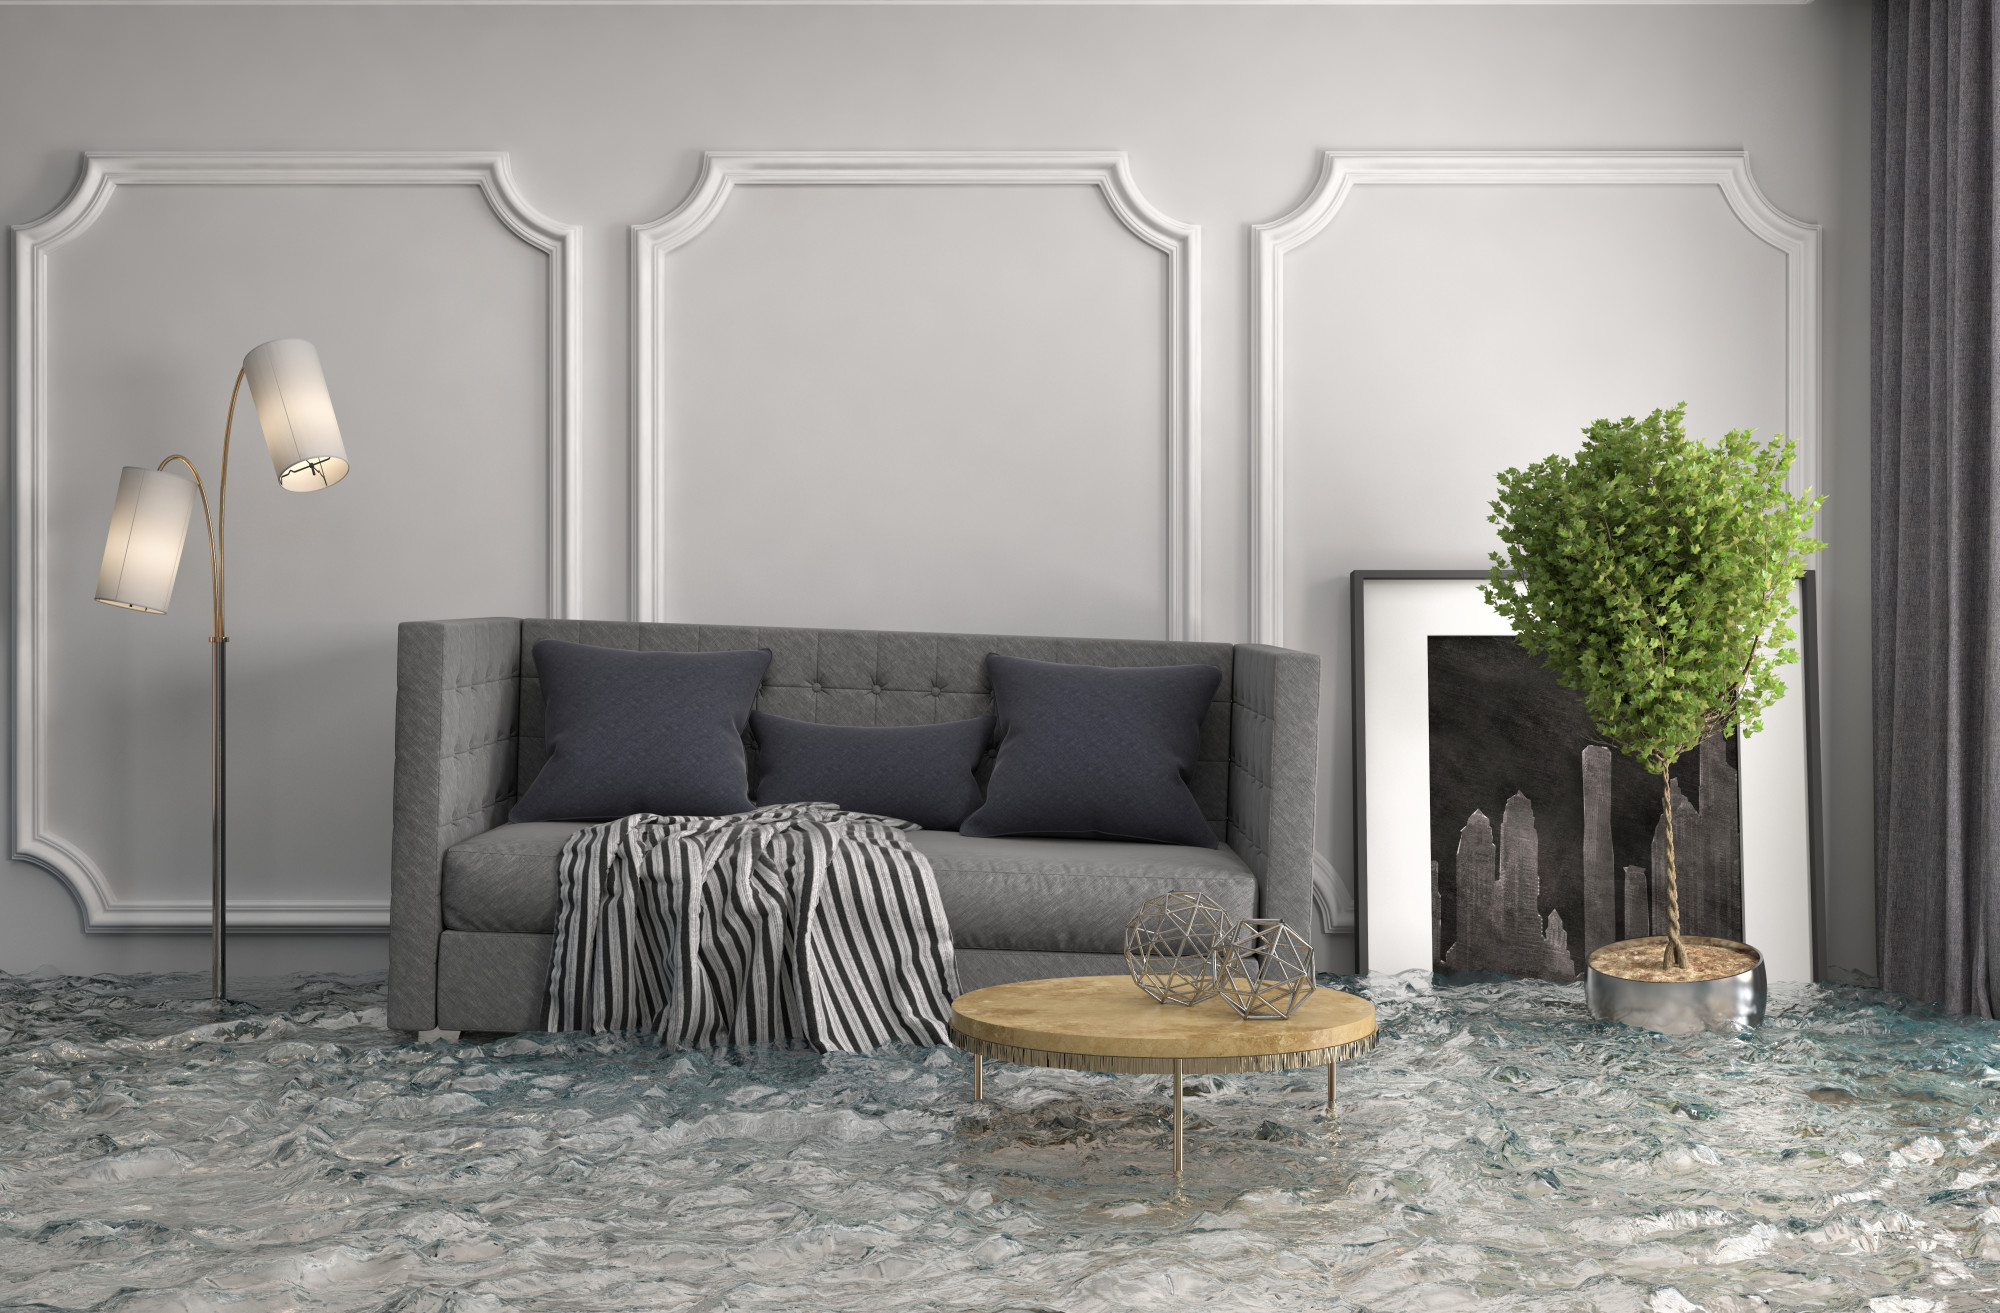 3d illustration of house interior flooded with water